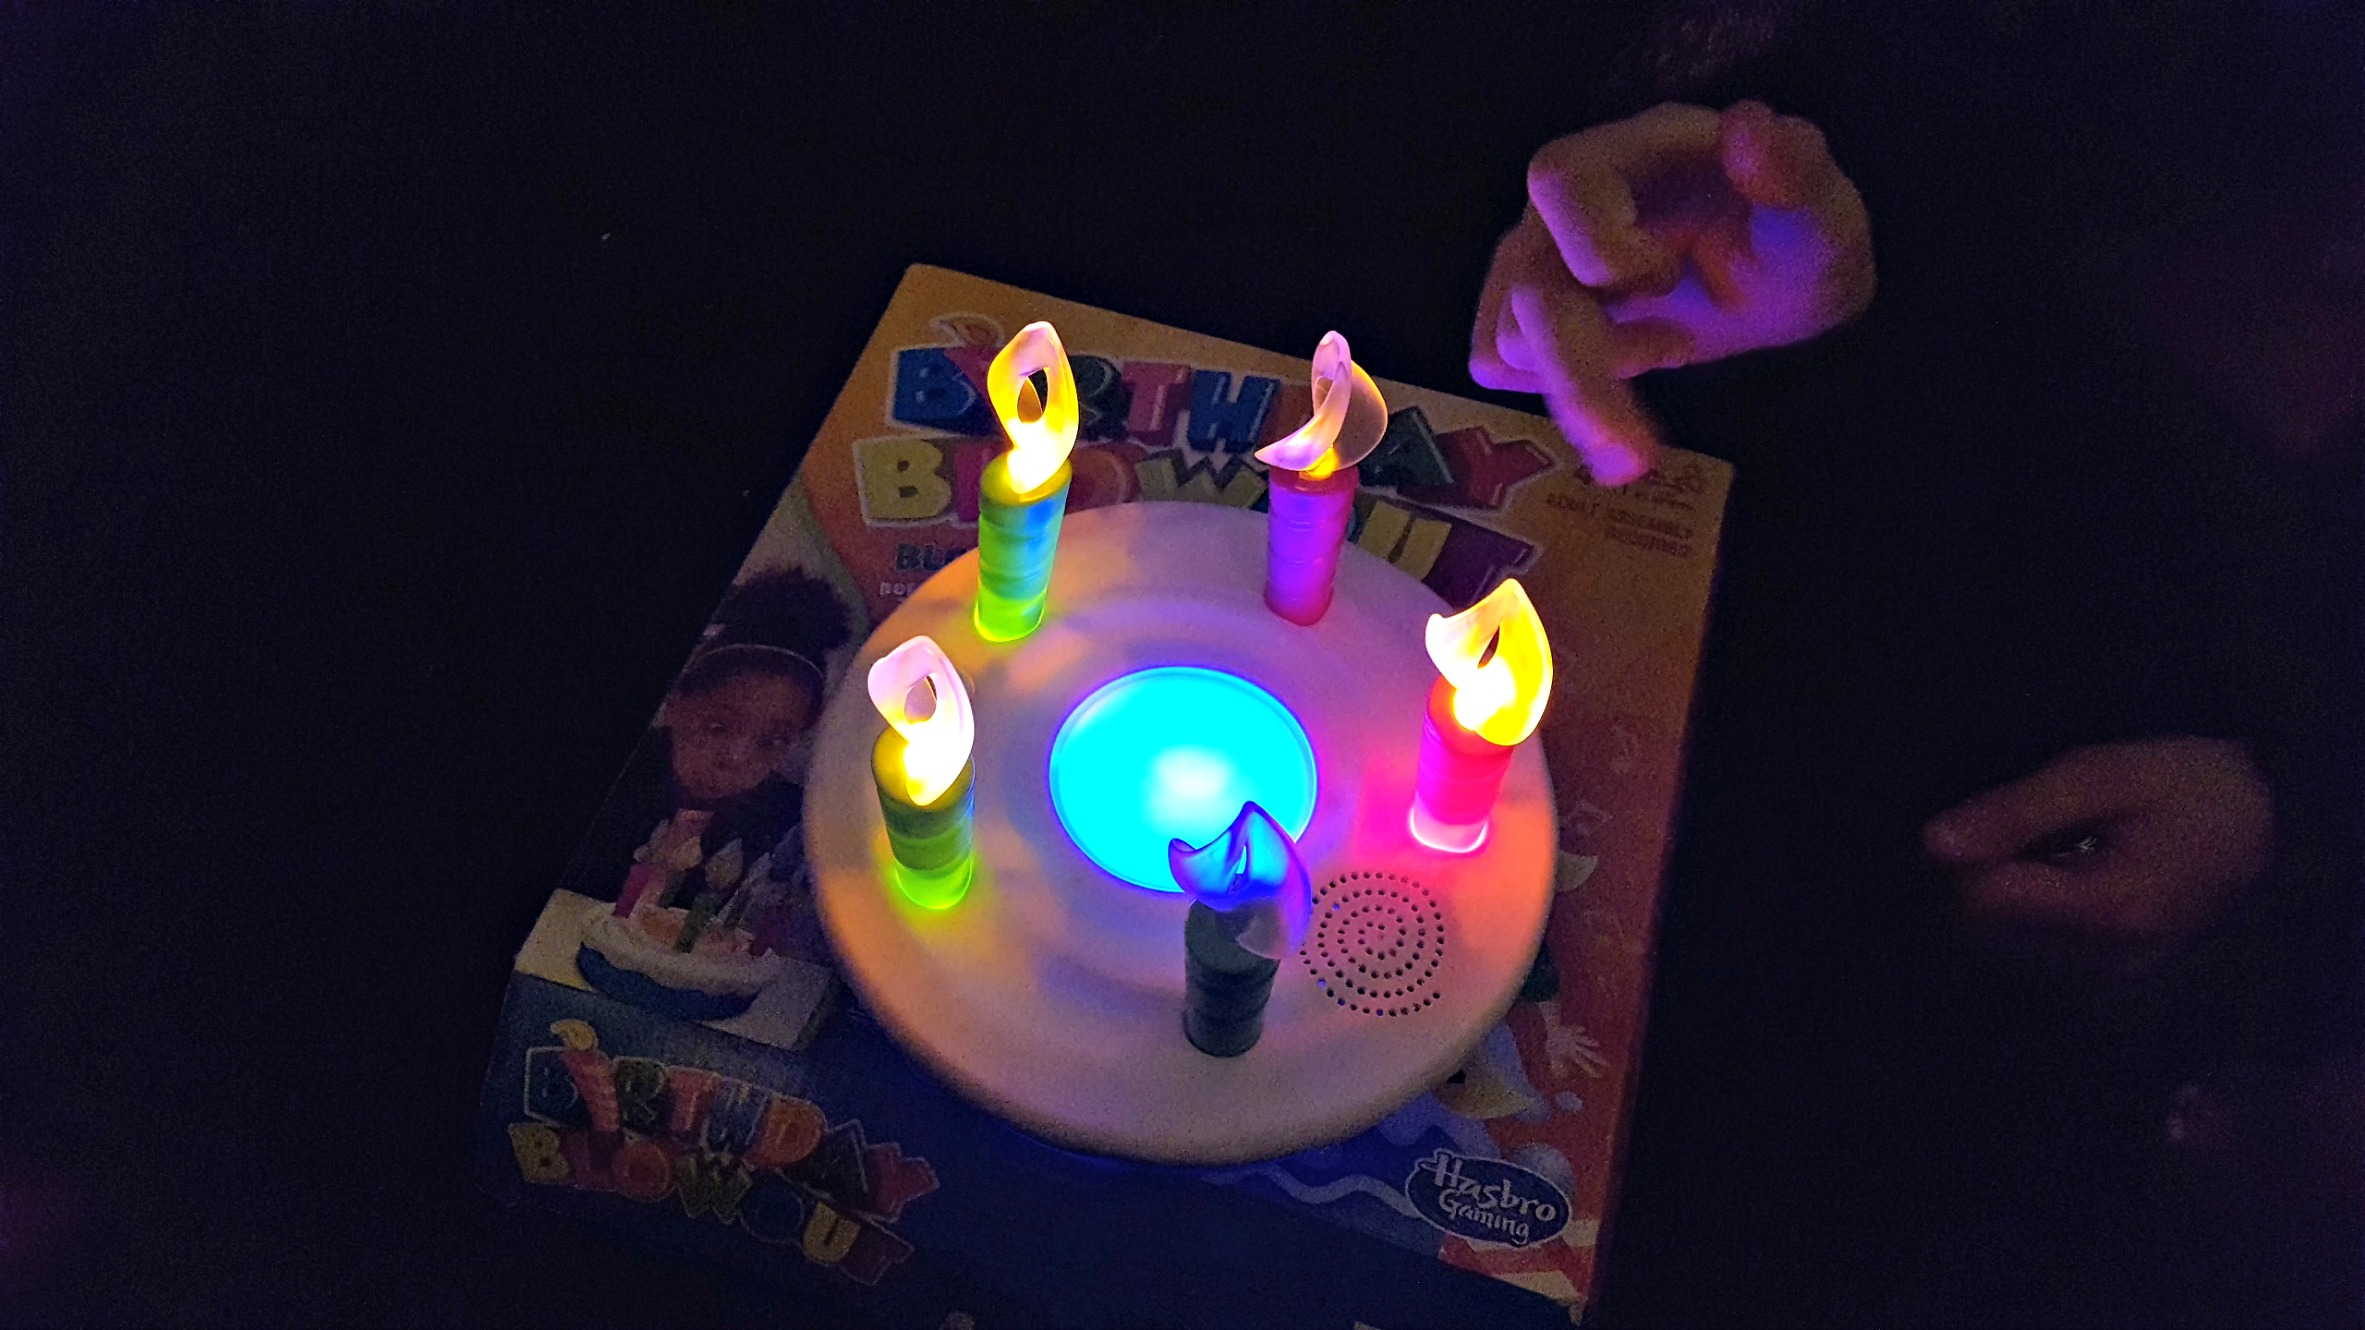 hasbro birthday blowout game on box in the dark with candles and cake lit up